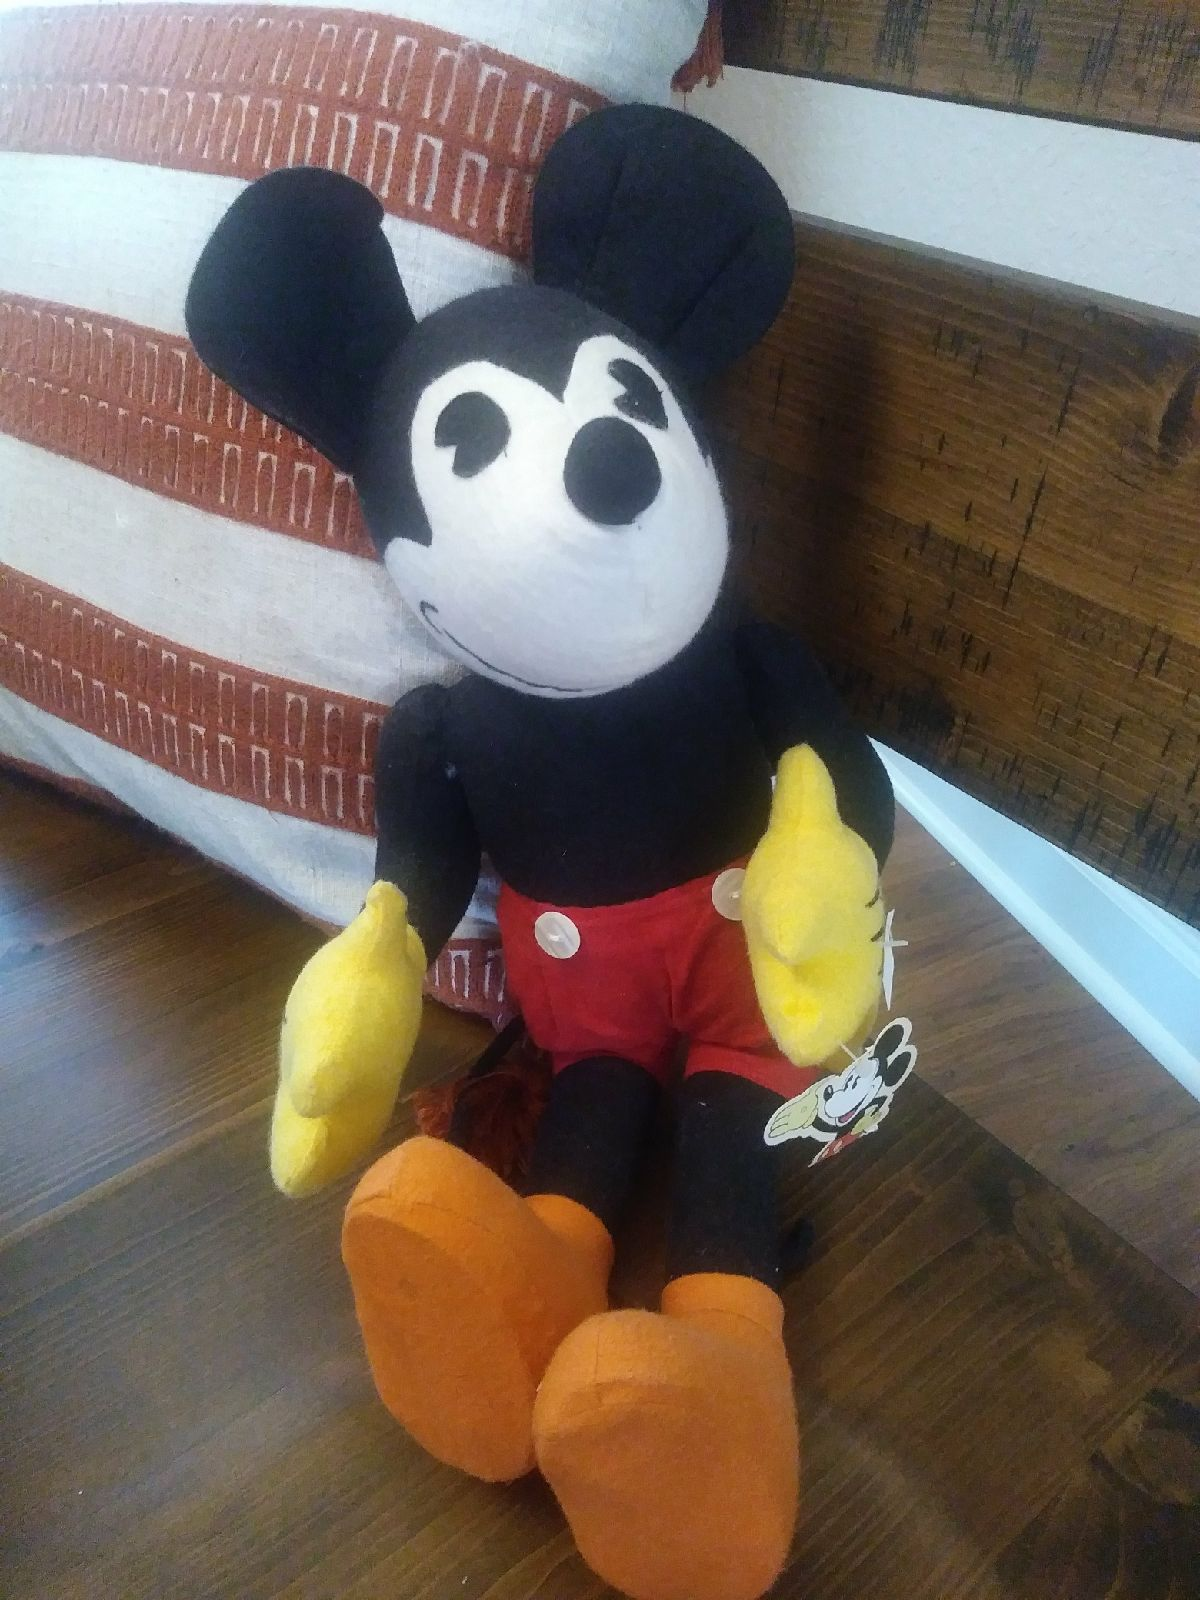 Predownload: Retro Collection Disney 19 Mickey Mouse 2002 Schylling Plush Stuffed Animal Legs Are Poseable In Goo Disney Stuffed Animals Plush Stuffed Animals Mickey Mouse [ 1600 x 1200 Pixel ]